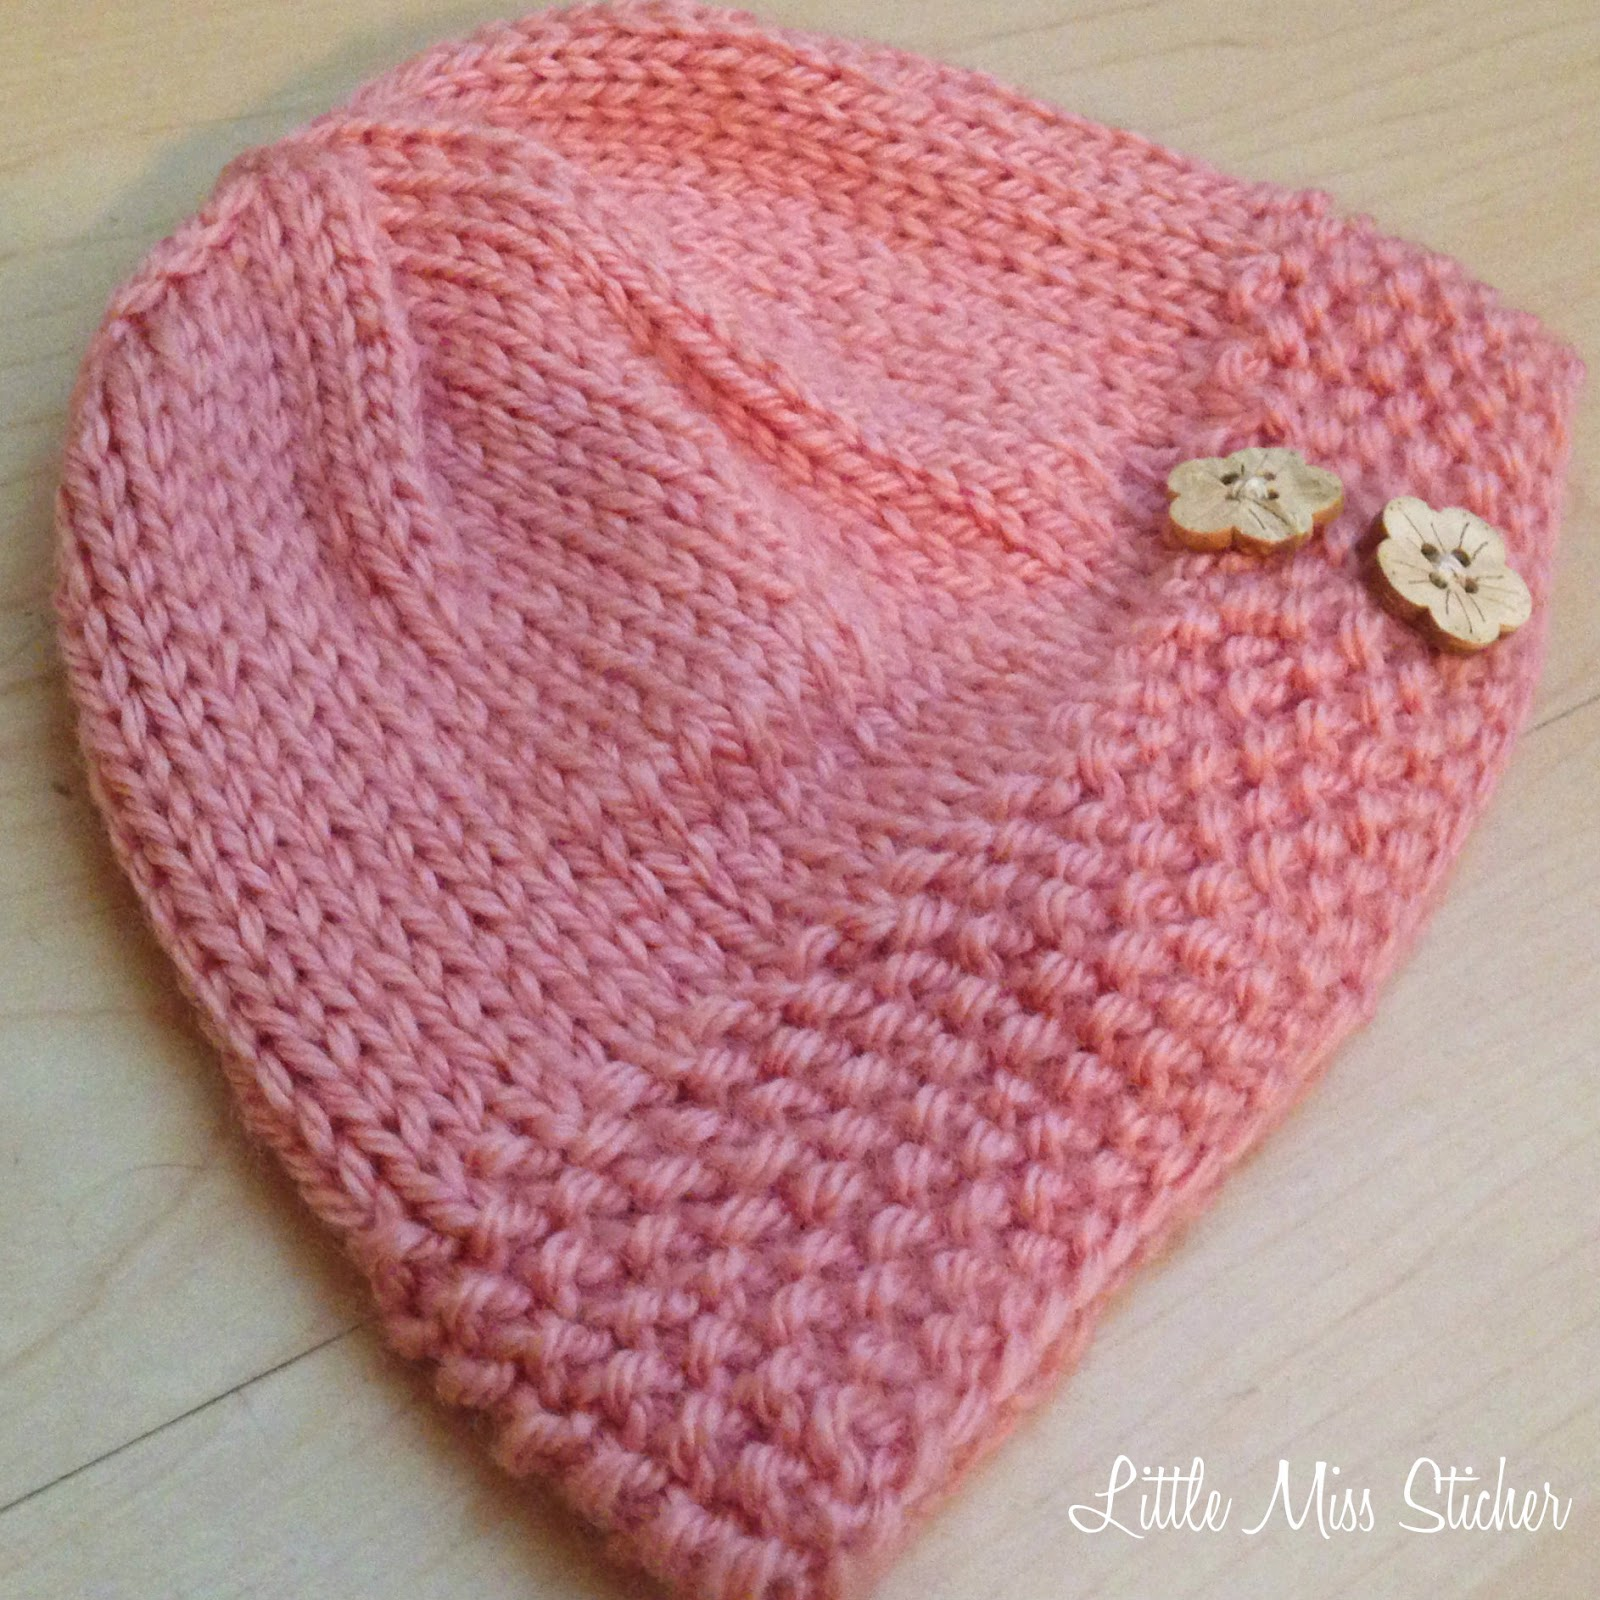 Free Hat Knitting Pattern For 2 Year Old : Free Easy Knit Hat Pattern Search Results Calendar 2015